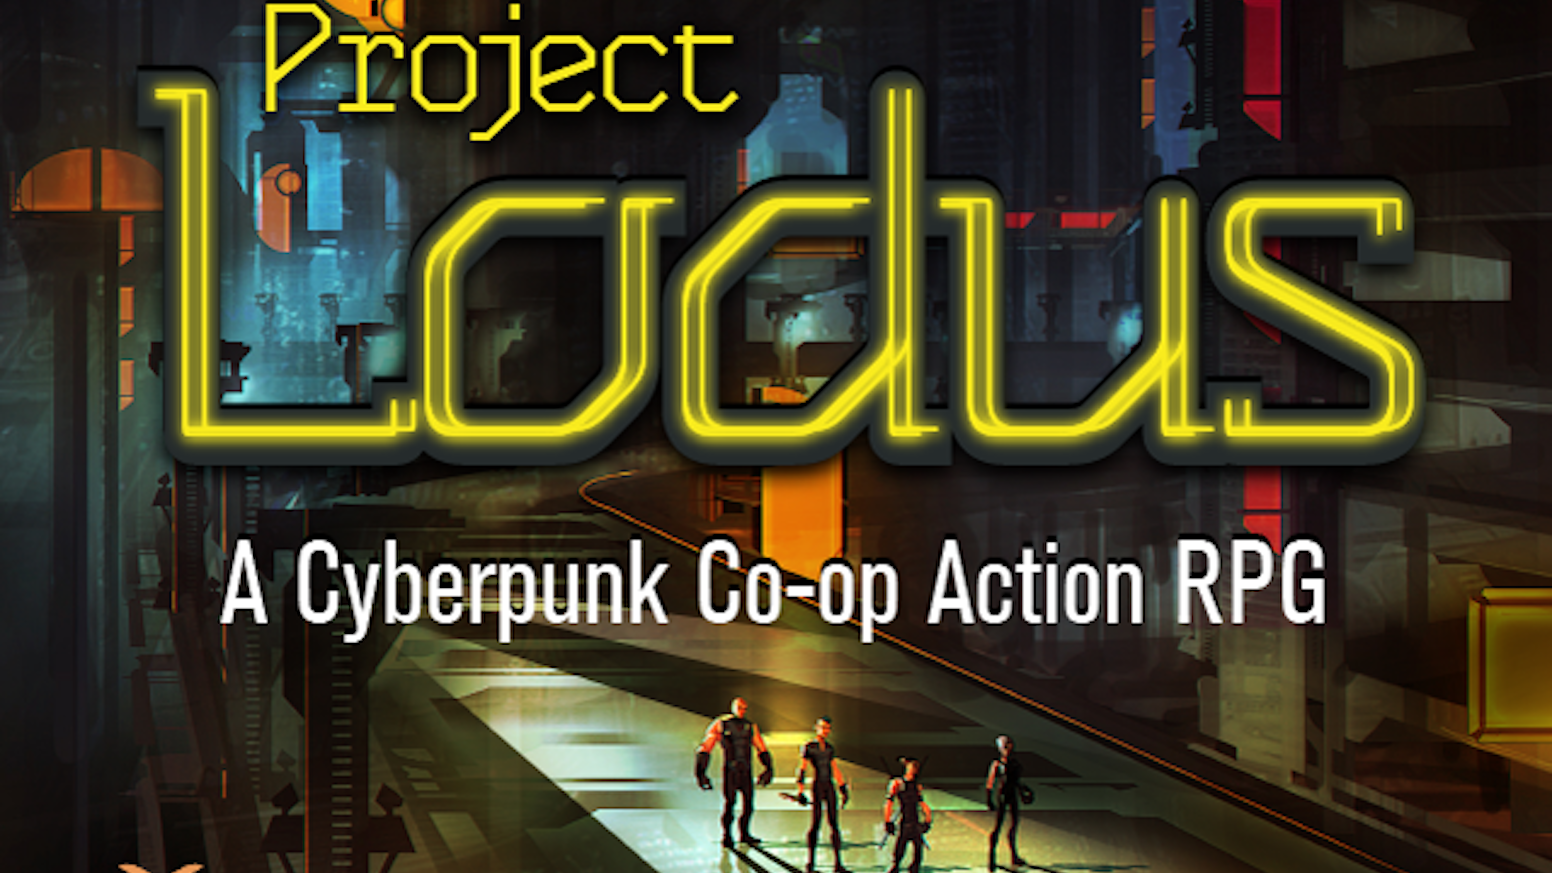 Project Lodus - A Cyberpunk Co-op Action RPG by Leviathan